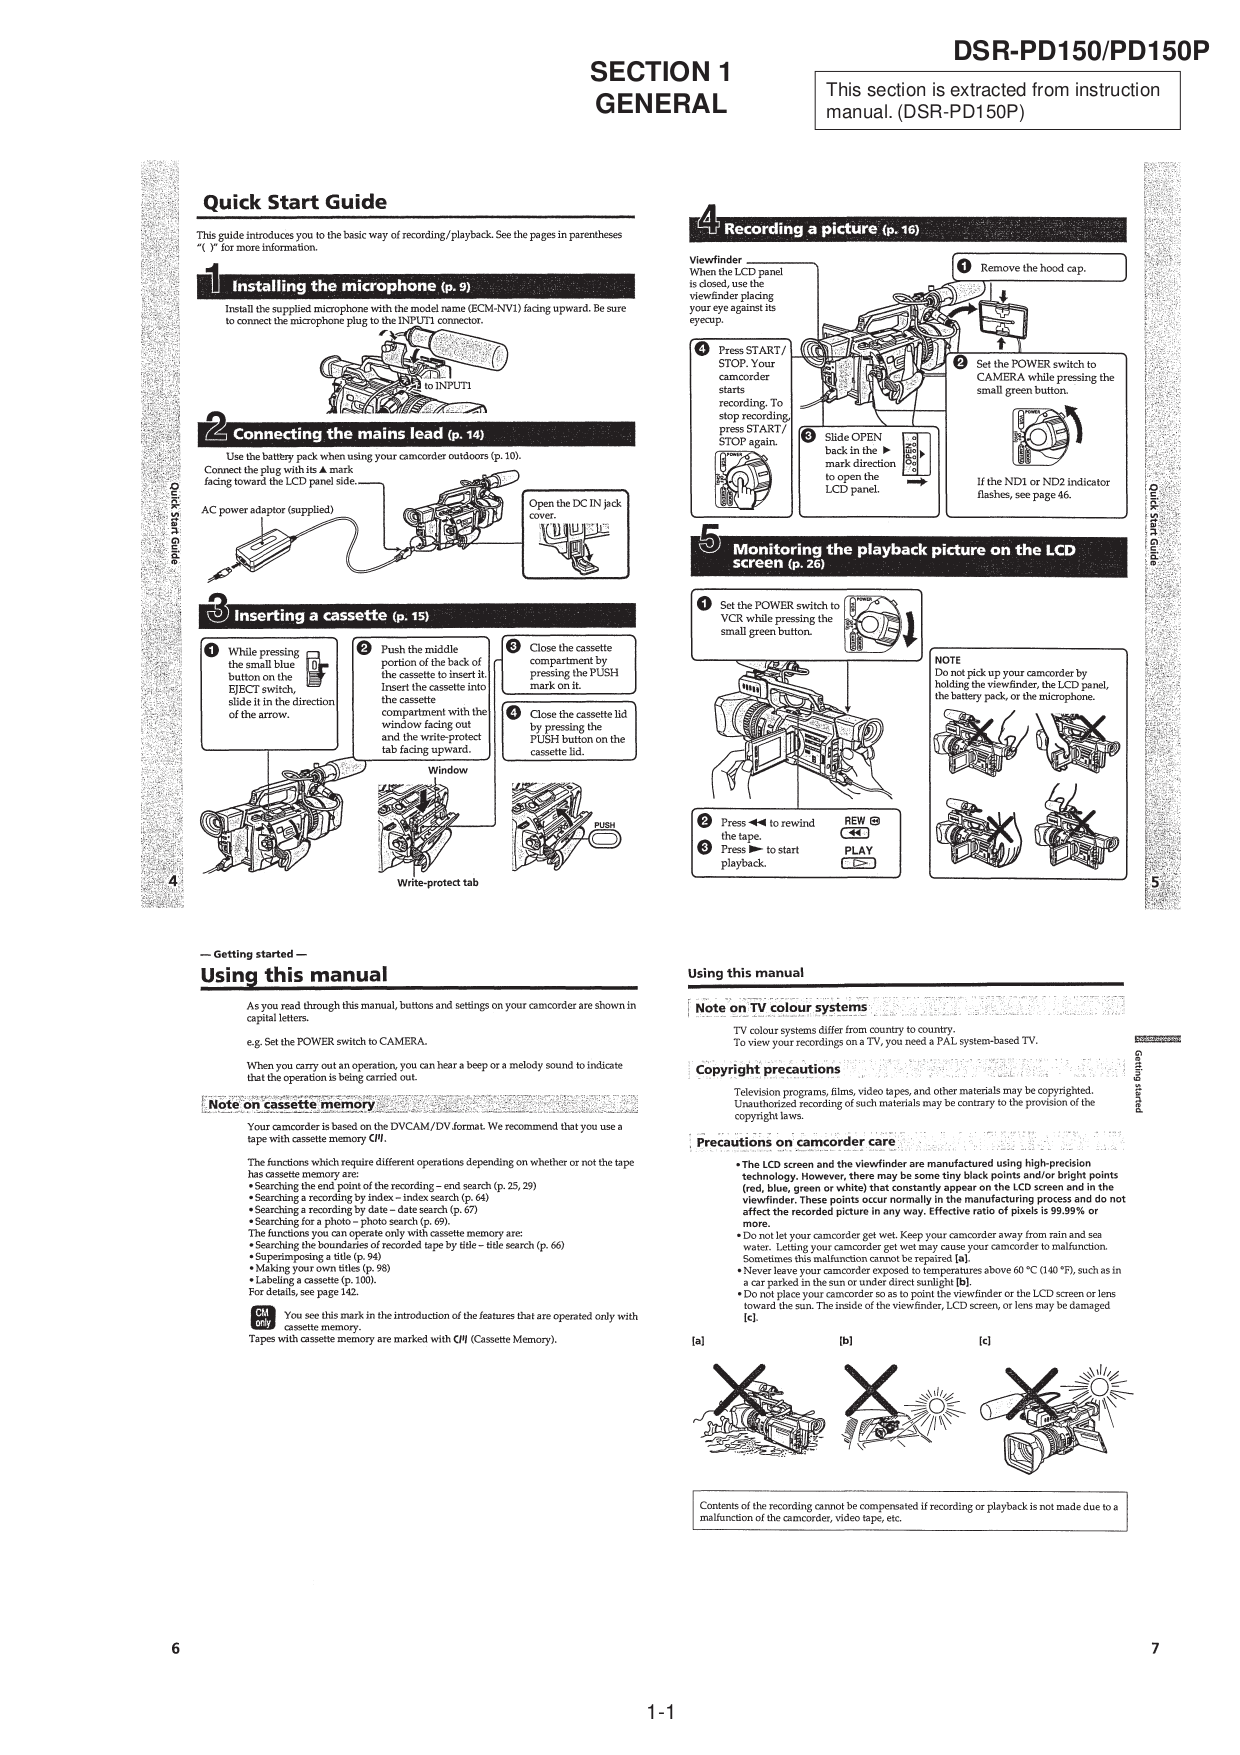 SONY DSR-PD150 MANUAL PDF DOWNLOAD